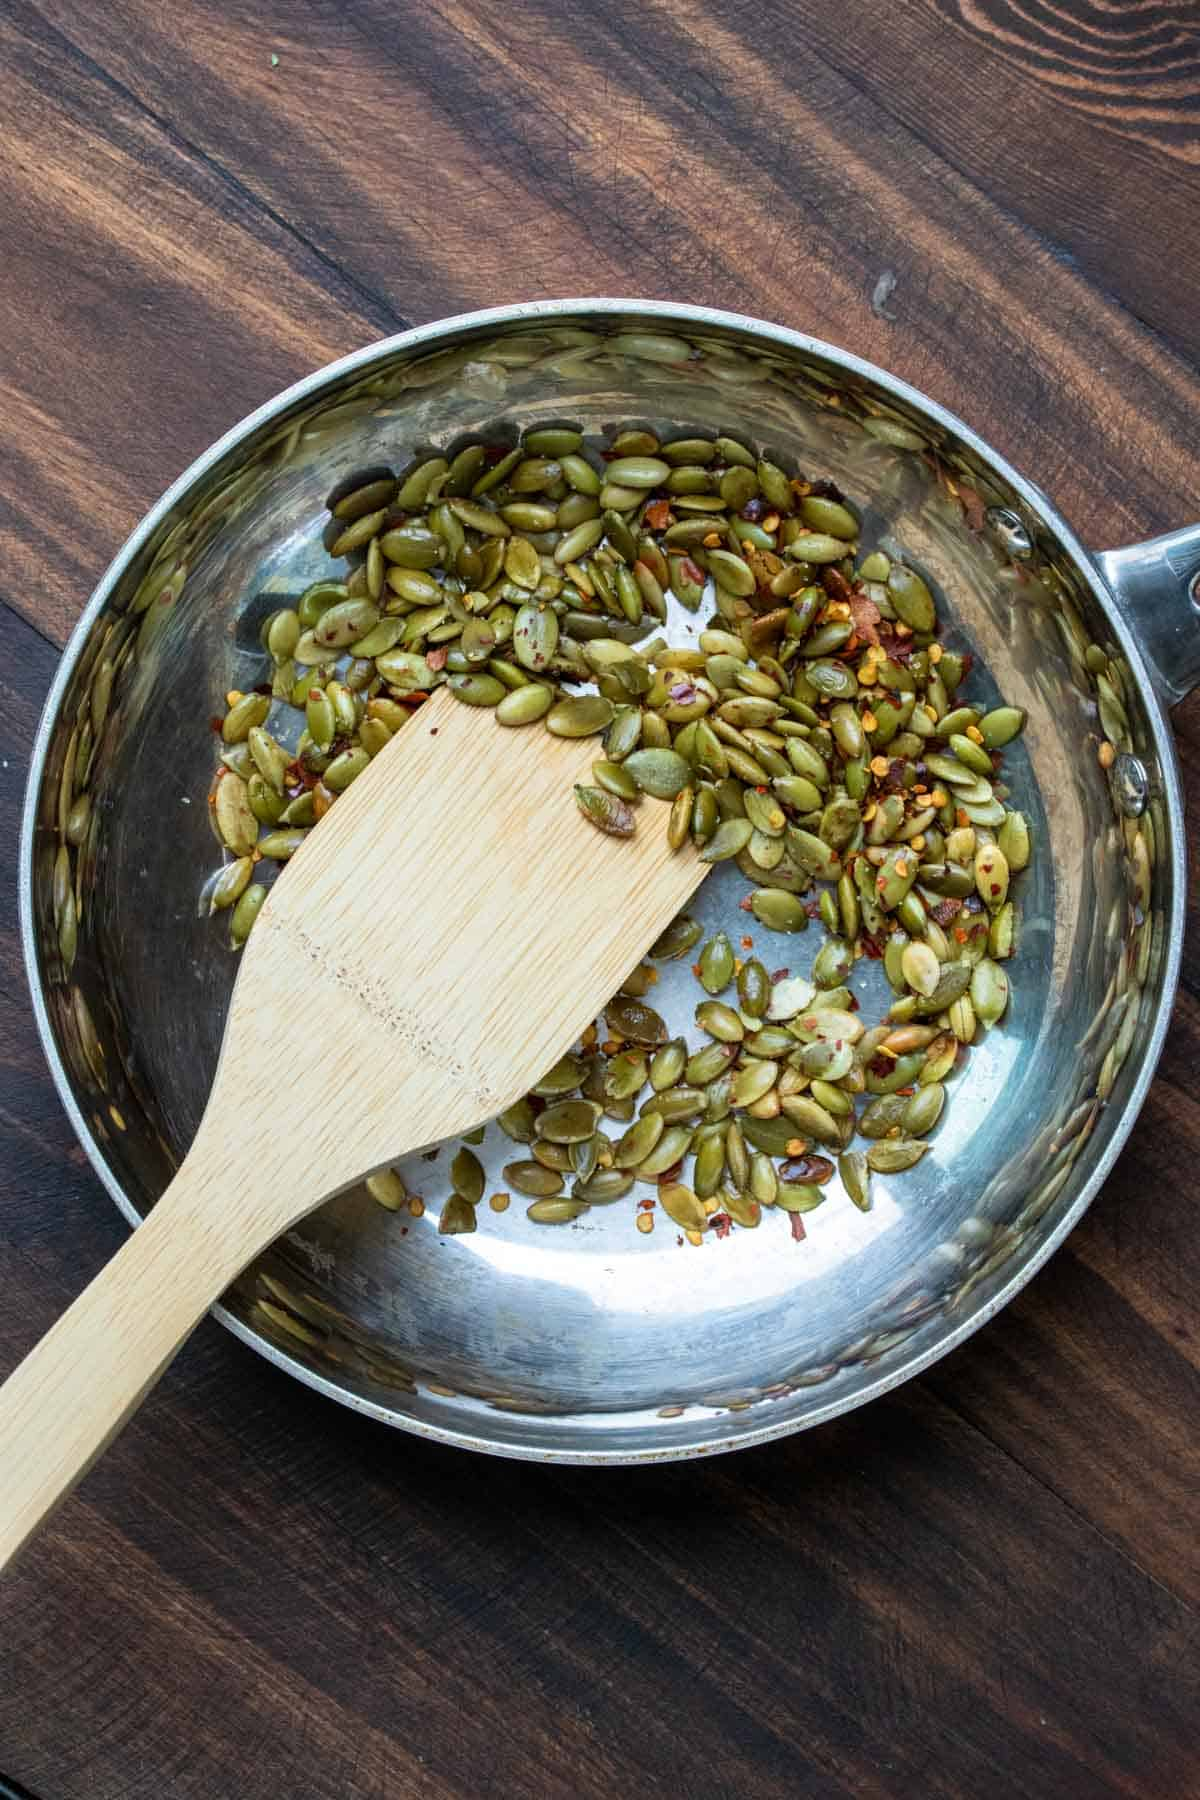 Pumpkin seeds and spices cooking in a pan